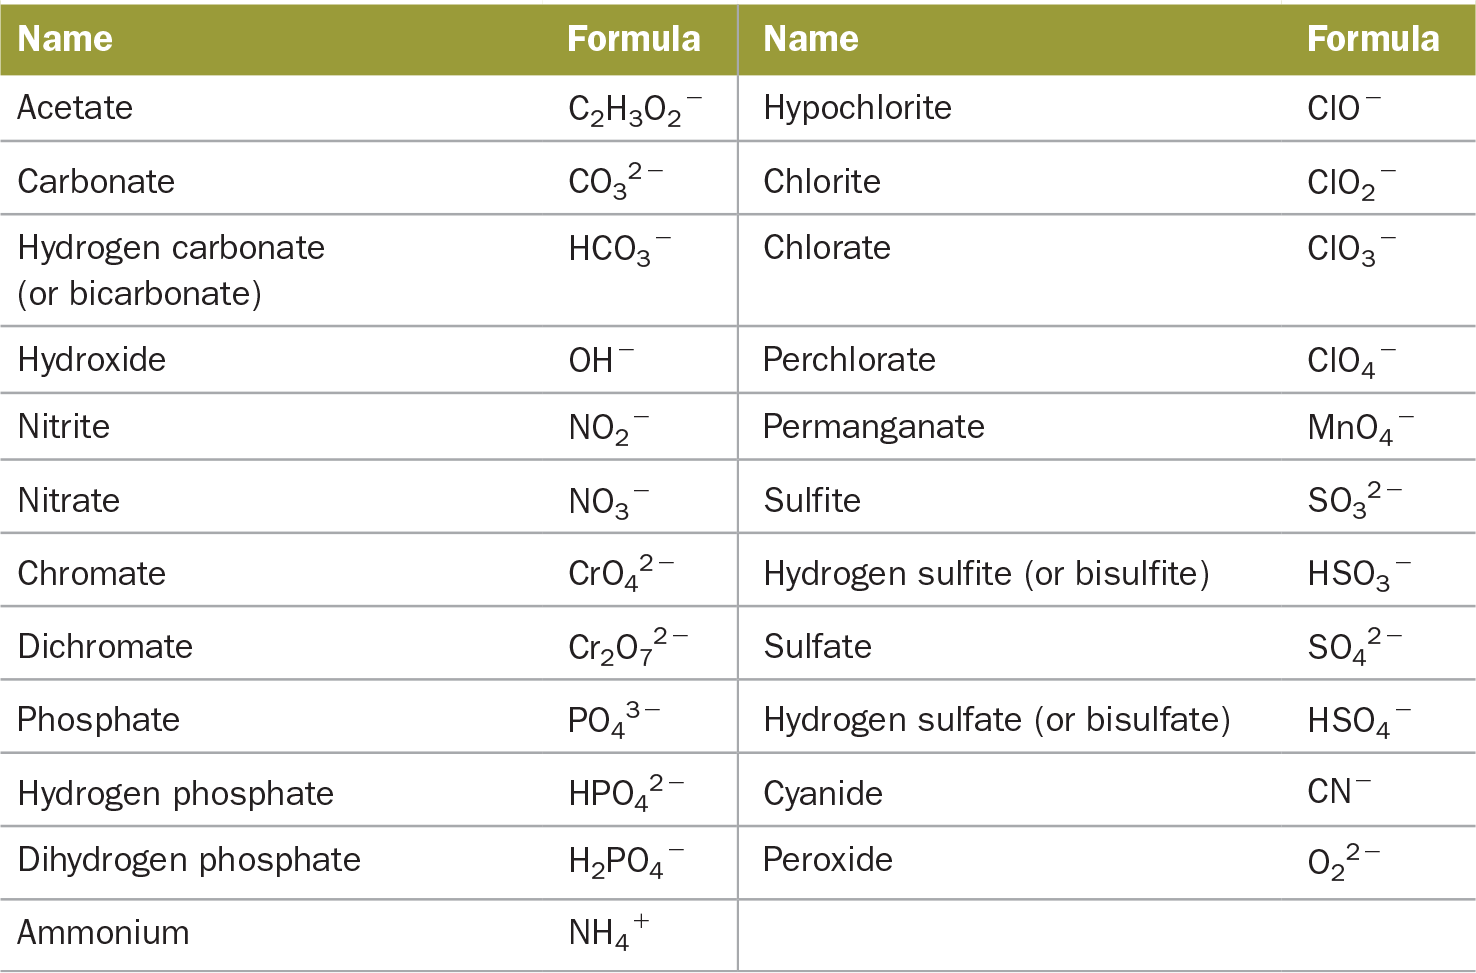 35 Ionic Compounds Formulas And Names Chemistry Pinterest